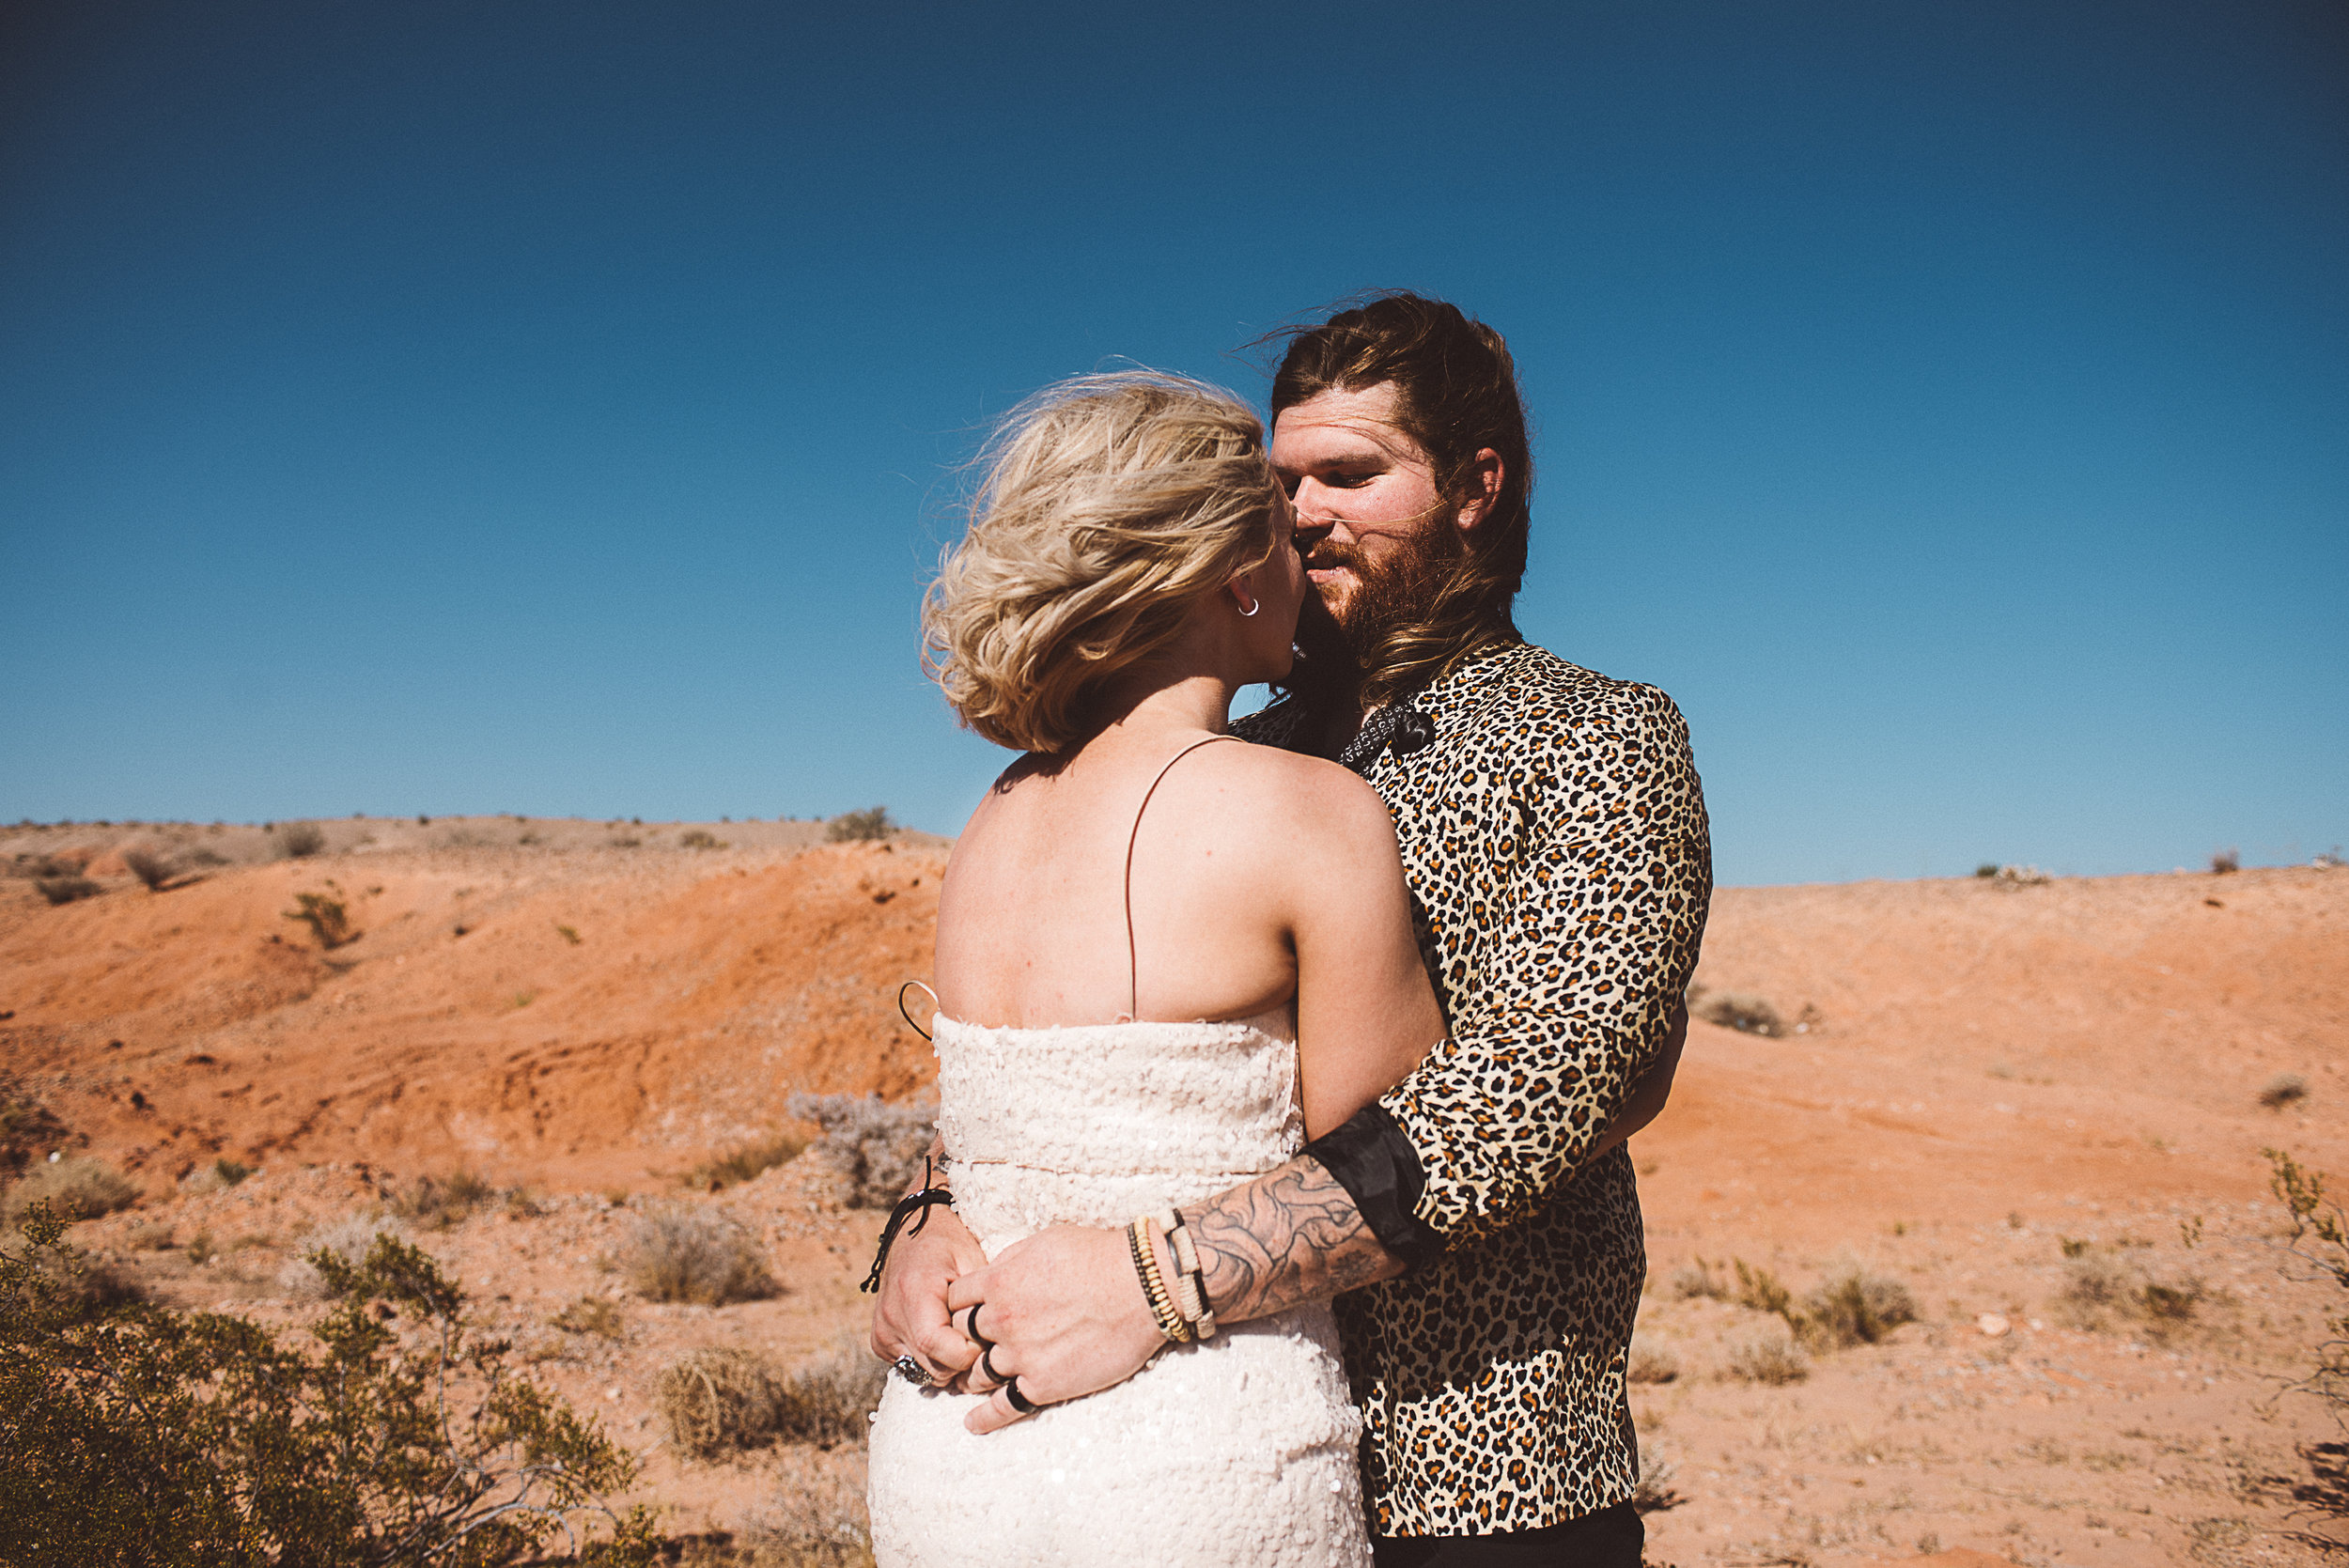 las vegas elopement, elope, rock'n roll bride, bride and groom, elvis wedding, pop up wedding, wedding, tattooed bride, tattoos, las vegas photographer, lifestyle photography, elopement inspiration, desert wedding, babe, marilyn monroe, aerial, drone photography, desert, ashley marie myer